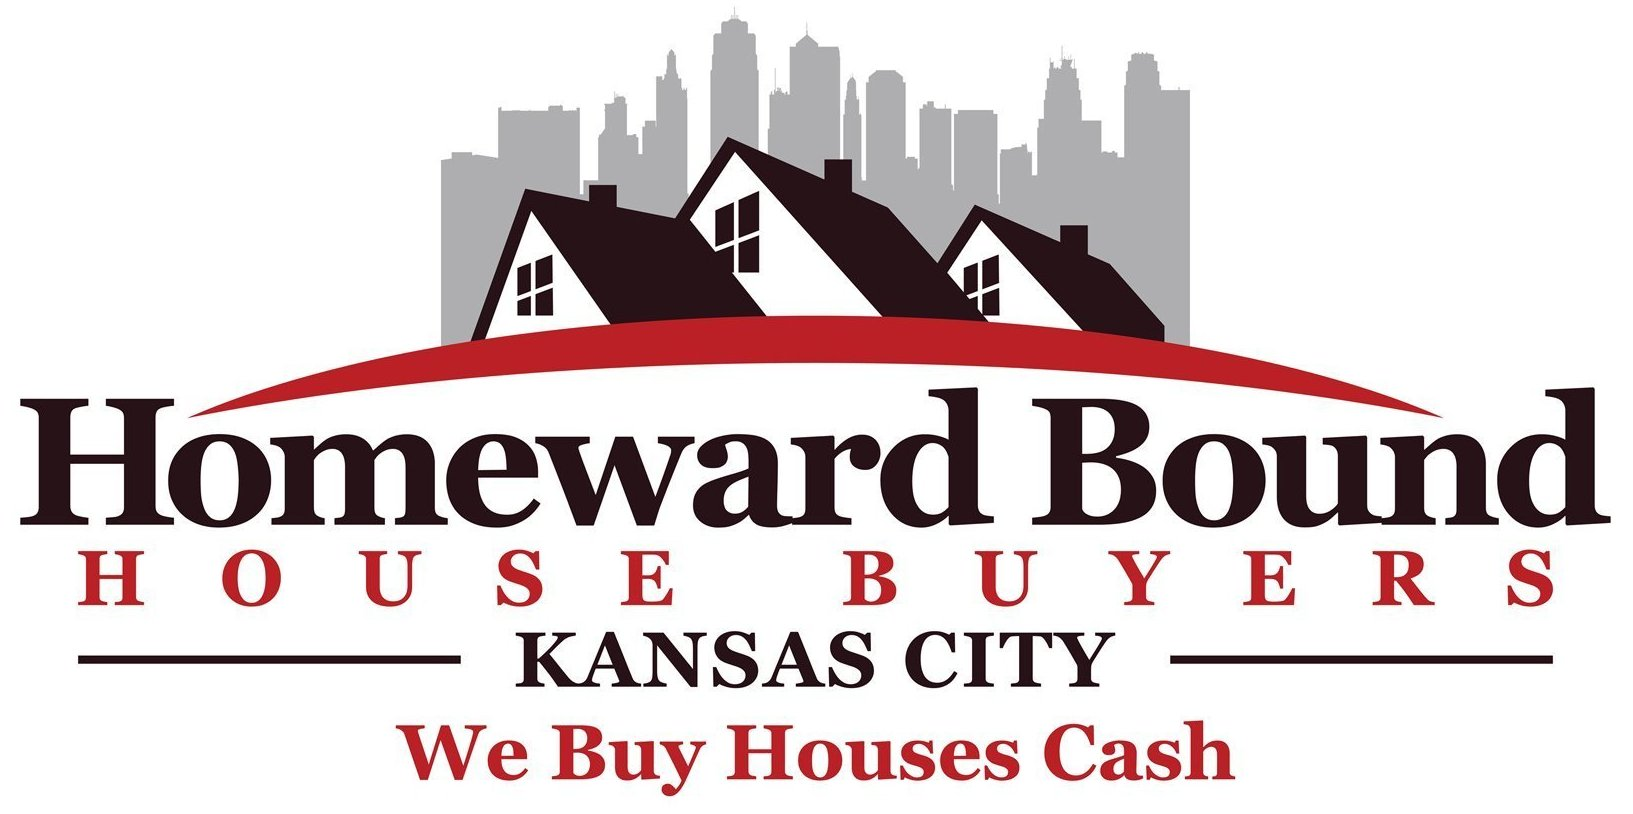 We Buy Houses in Kansas City | Homeward Bound House Buyers logo